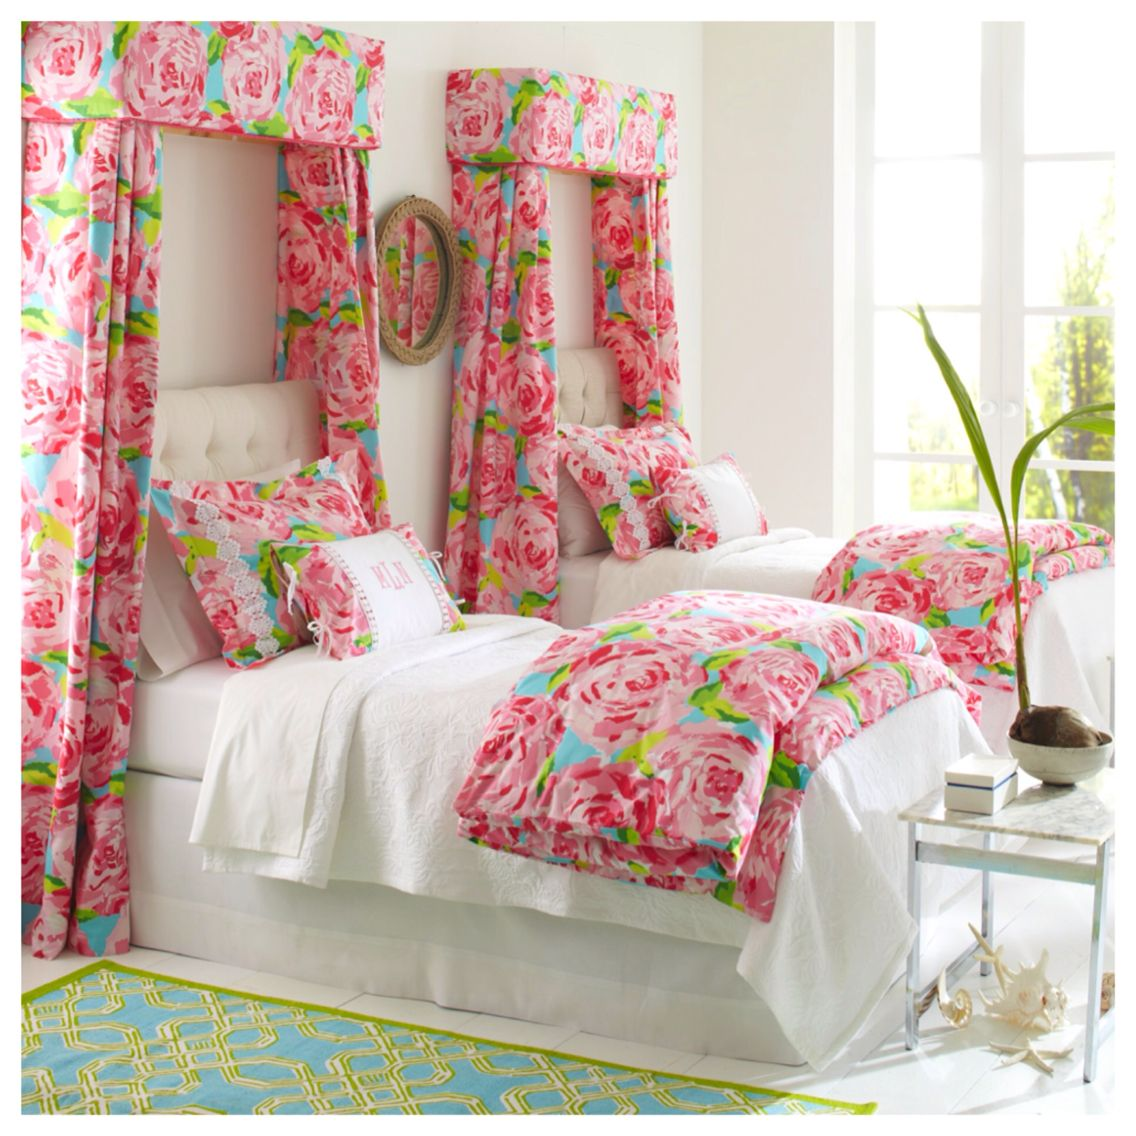 Merveilleux Room · First Impression Hotty Pink Lilly Pulitzer